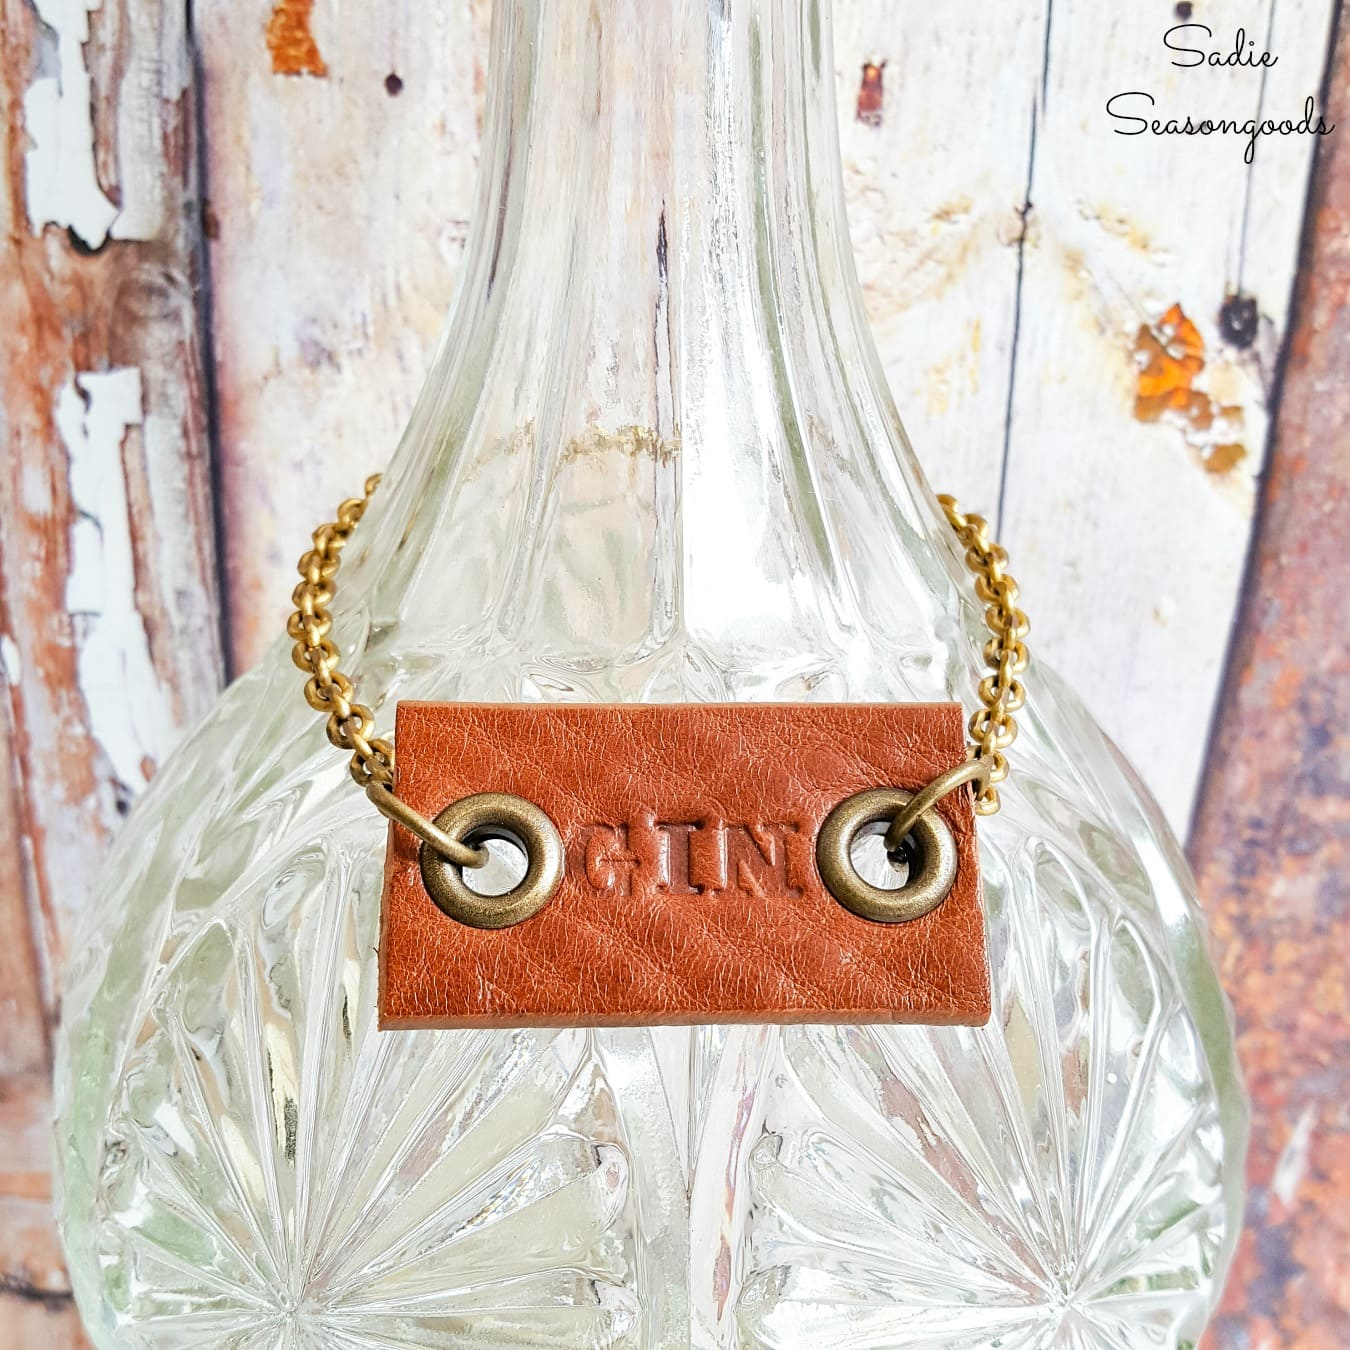 How to Make Decanter Labels from a Leather Belt